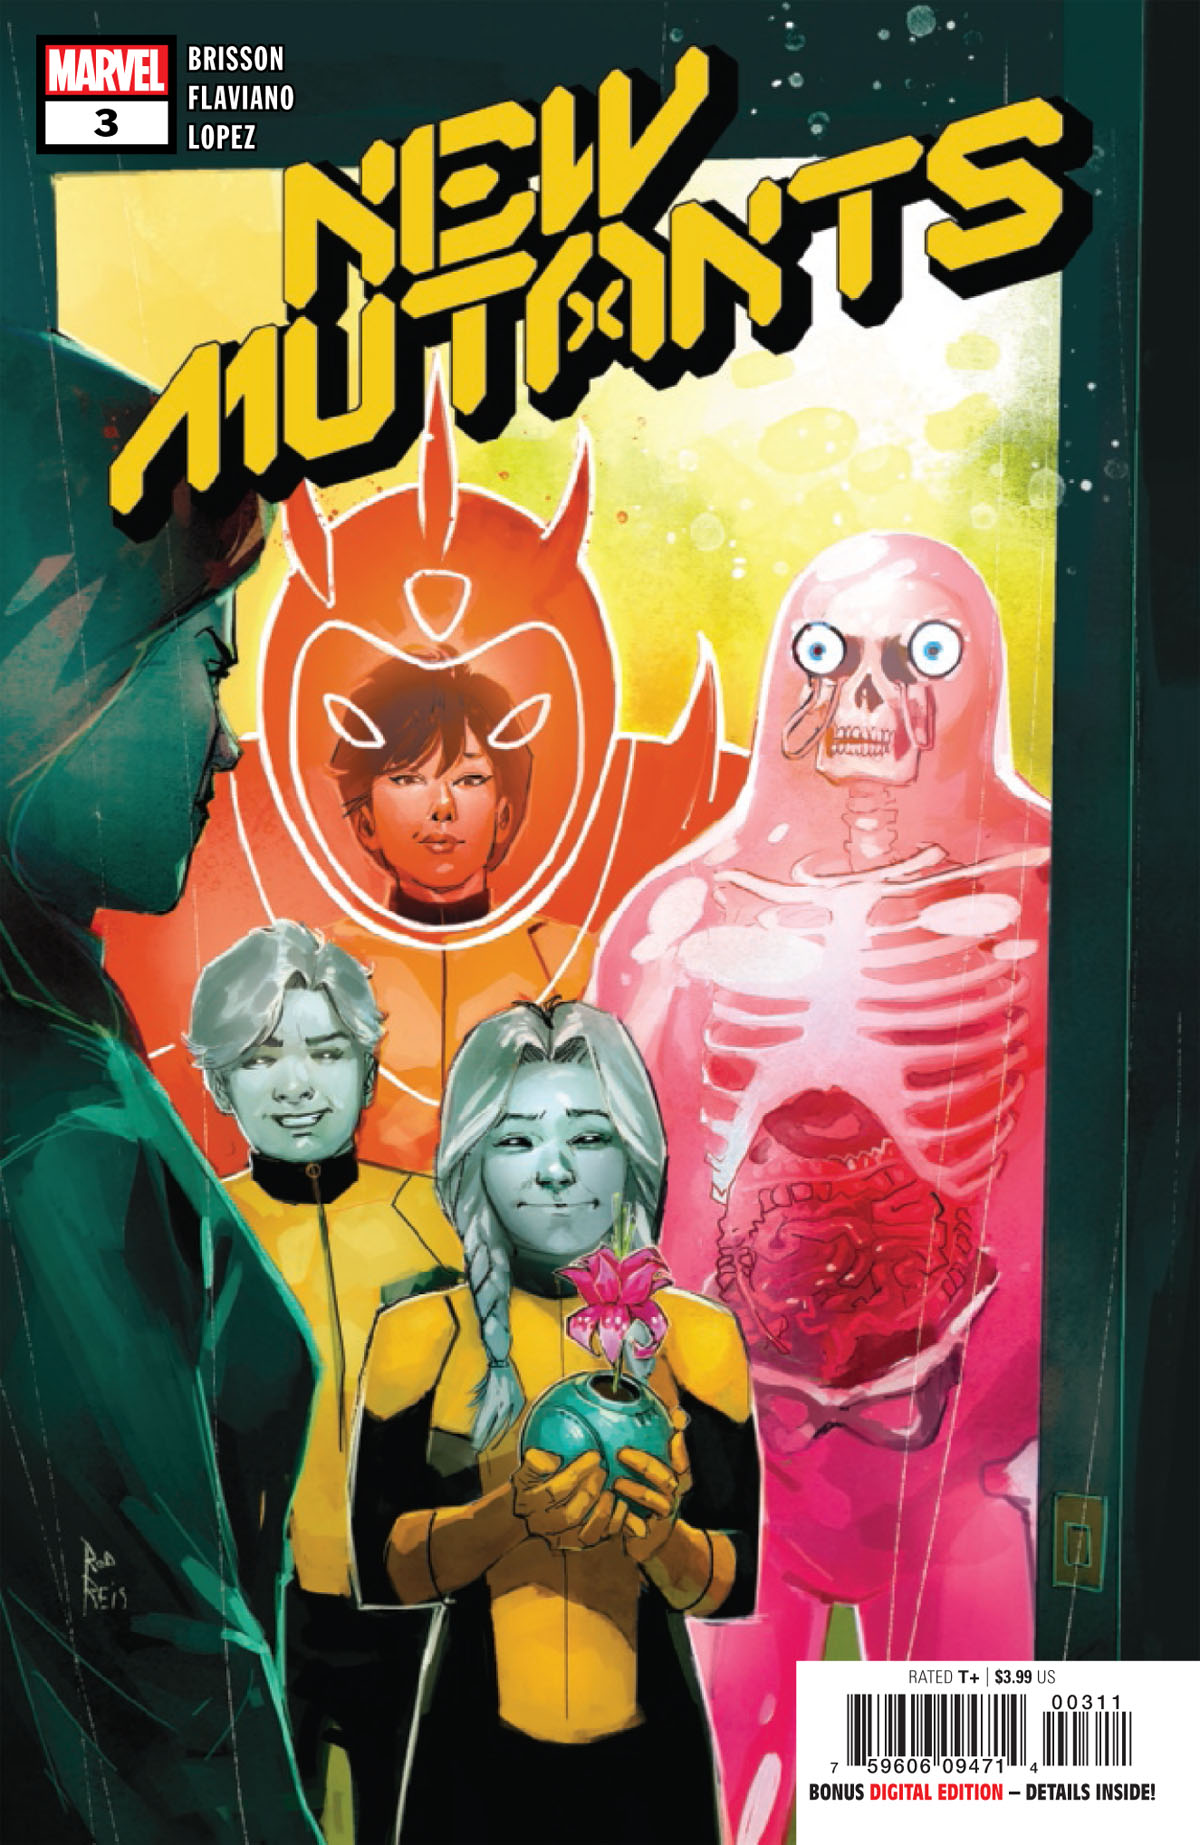 New Mutants #3 cover